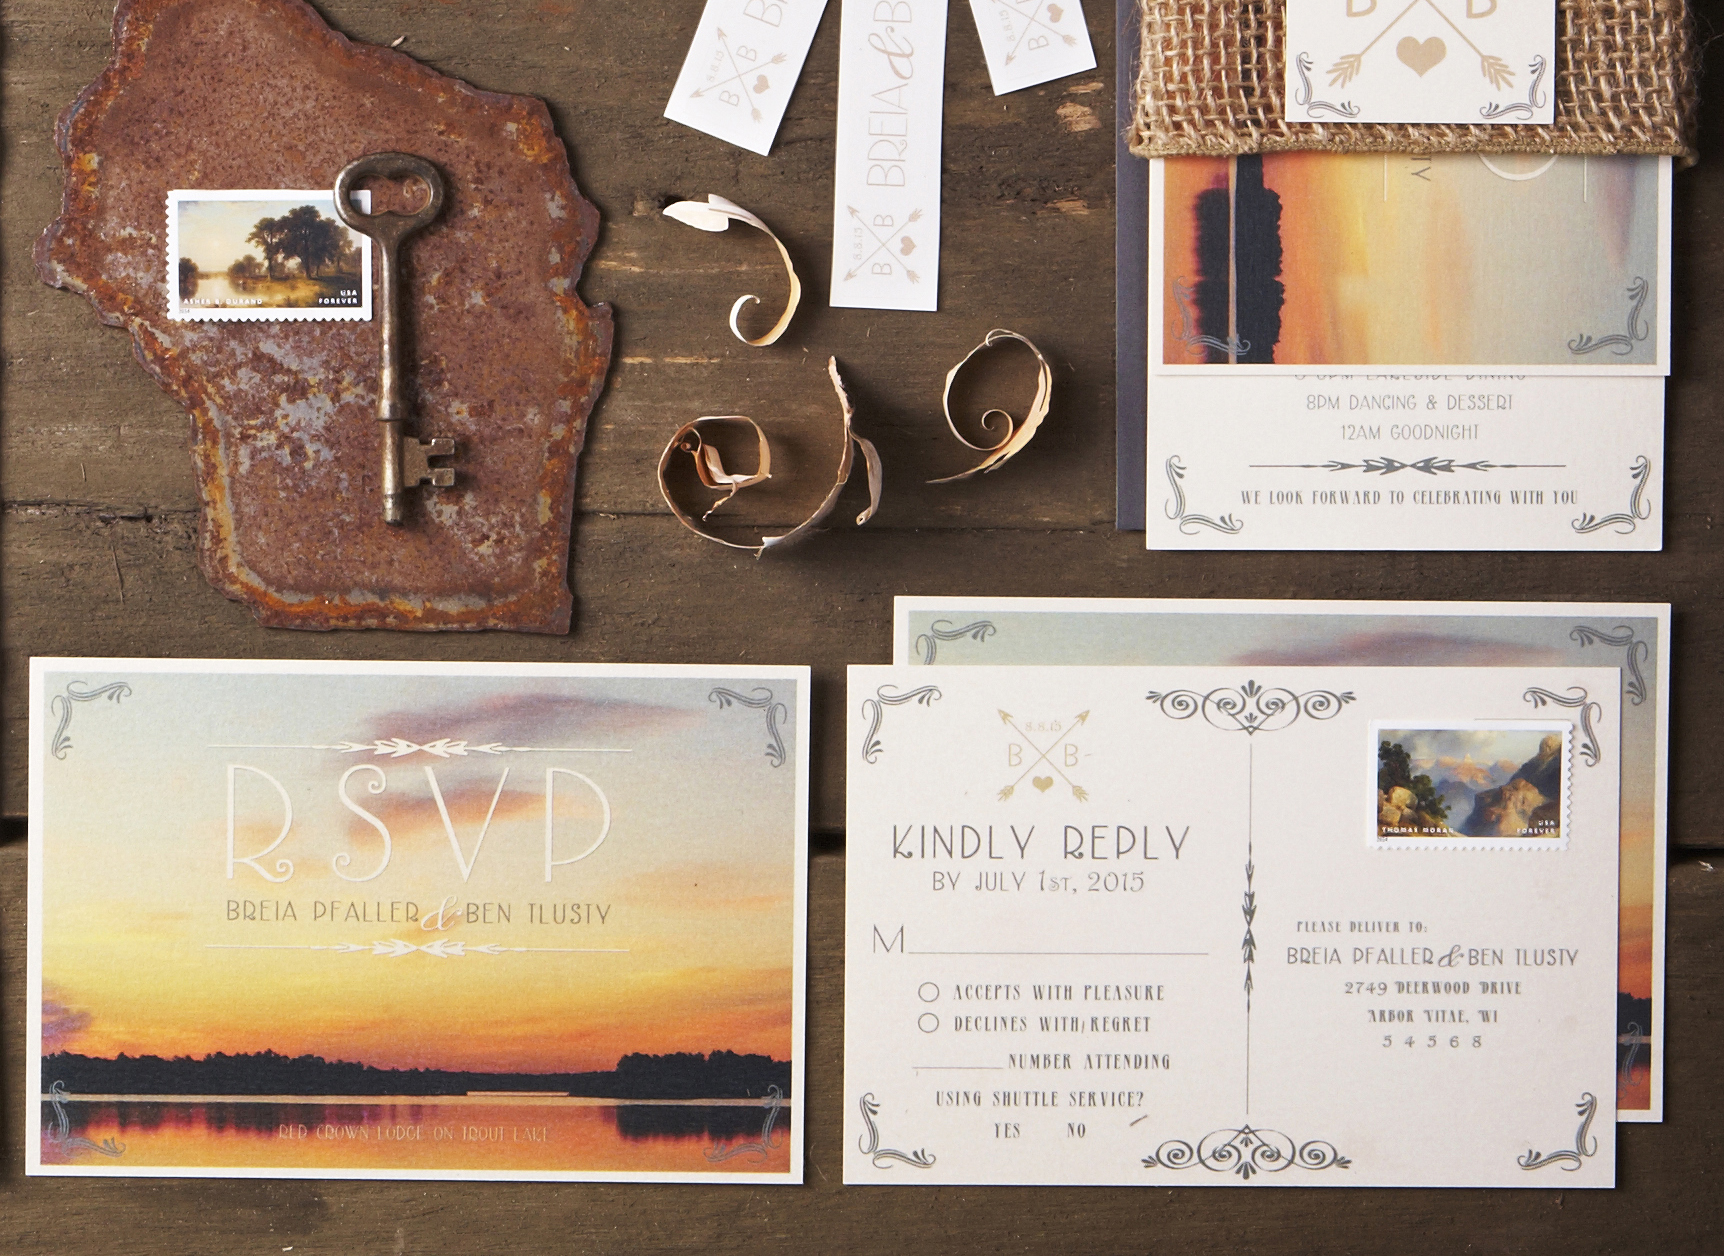 Breia_custom_wedding_invitation_huntwrightdesignco_002.jpg